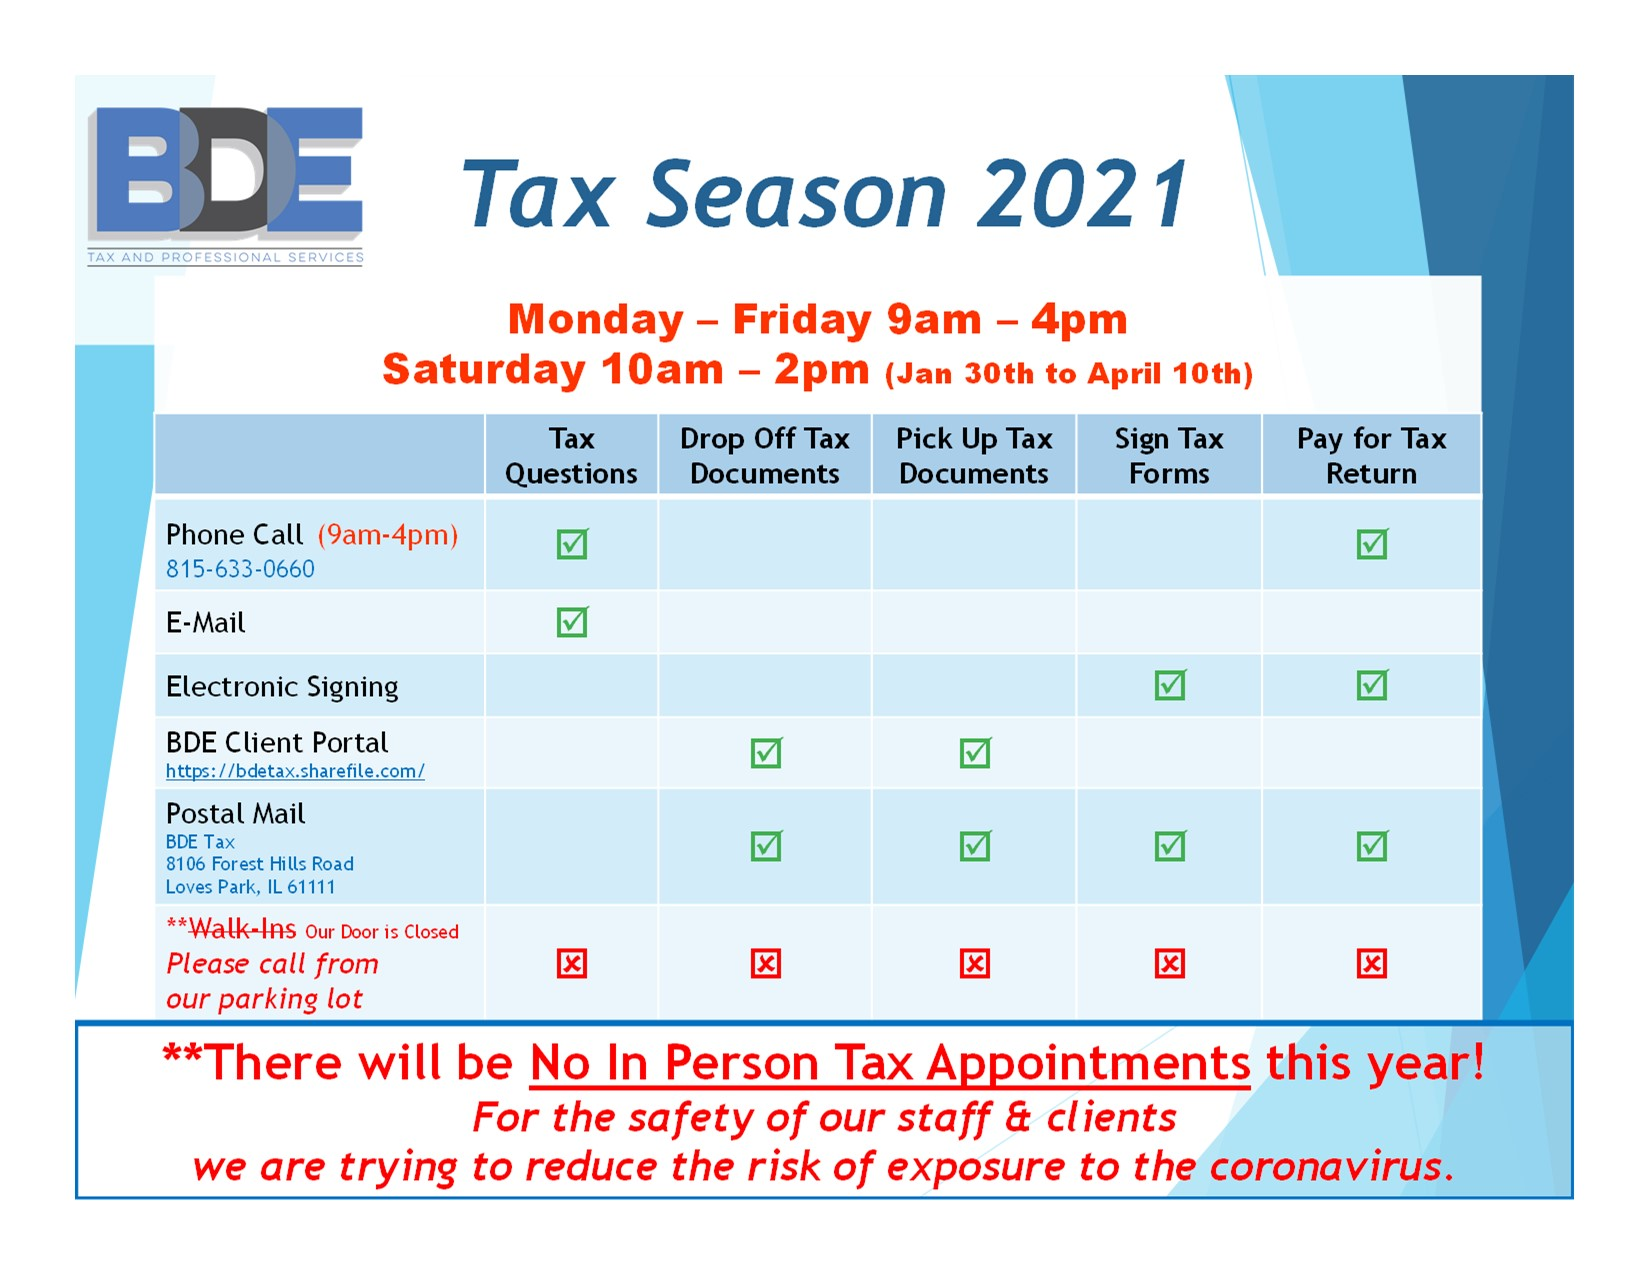 BDE Tax and Professional Services